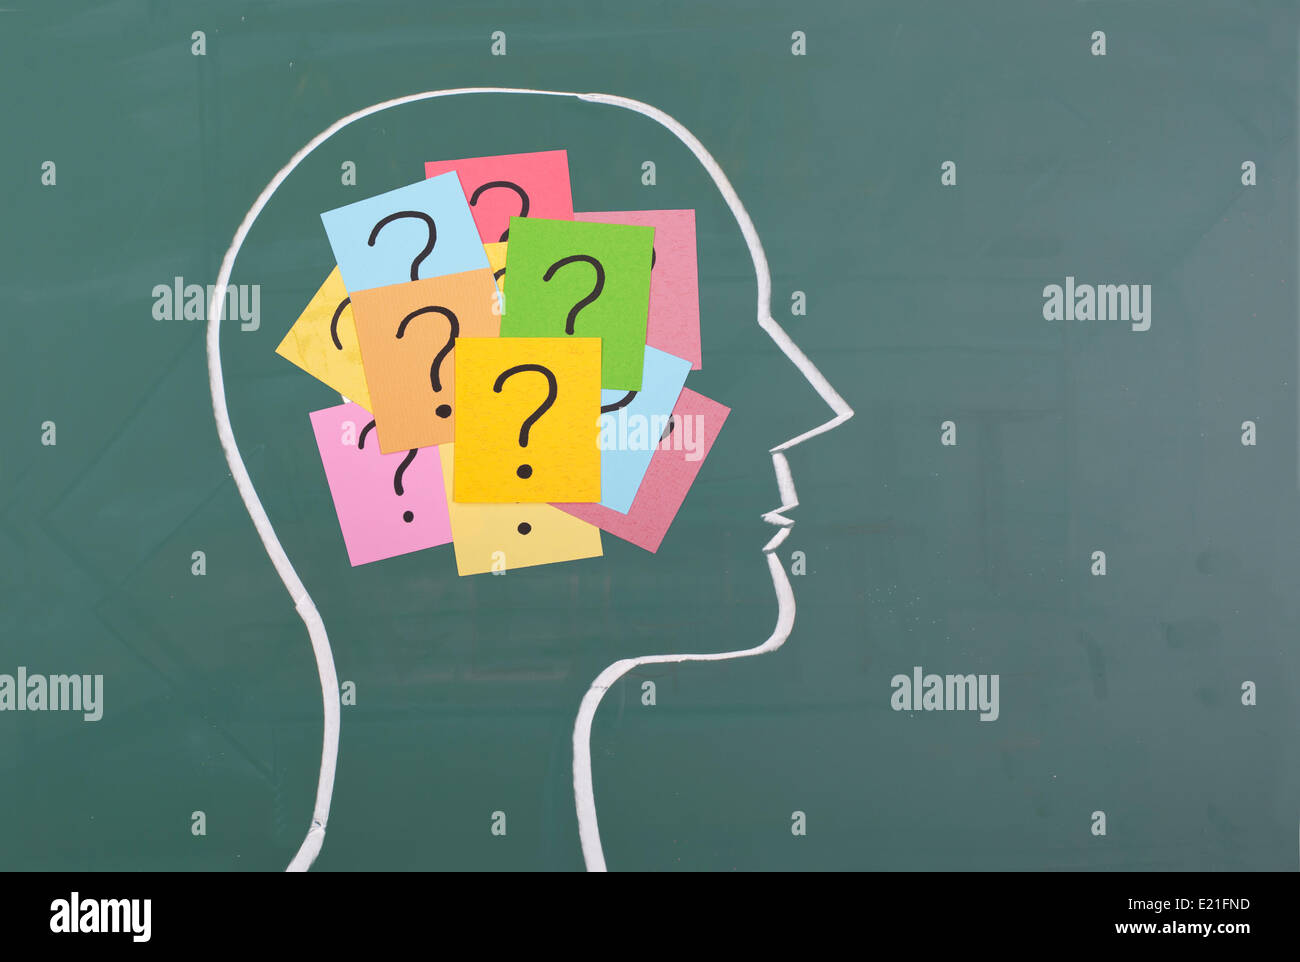 Human brain and colorful question mark - Stock Image